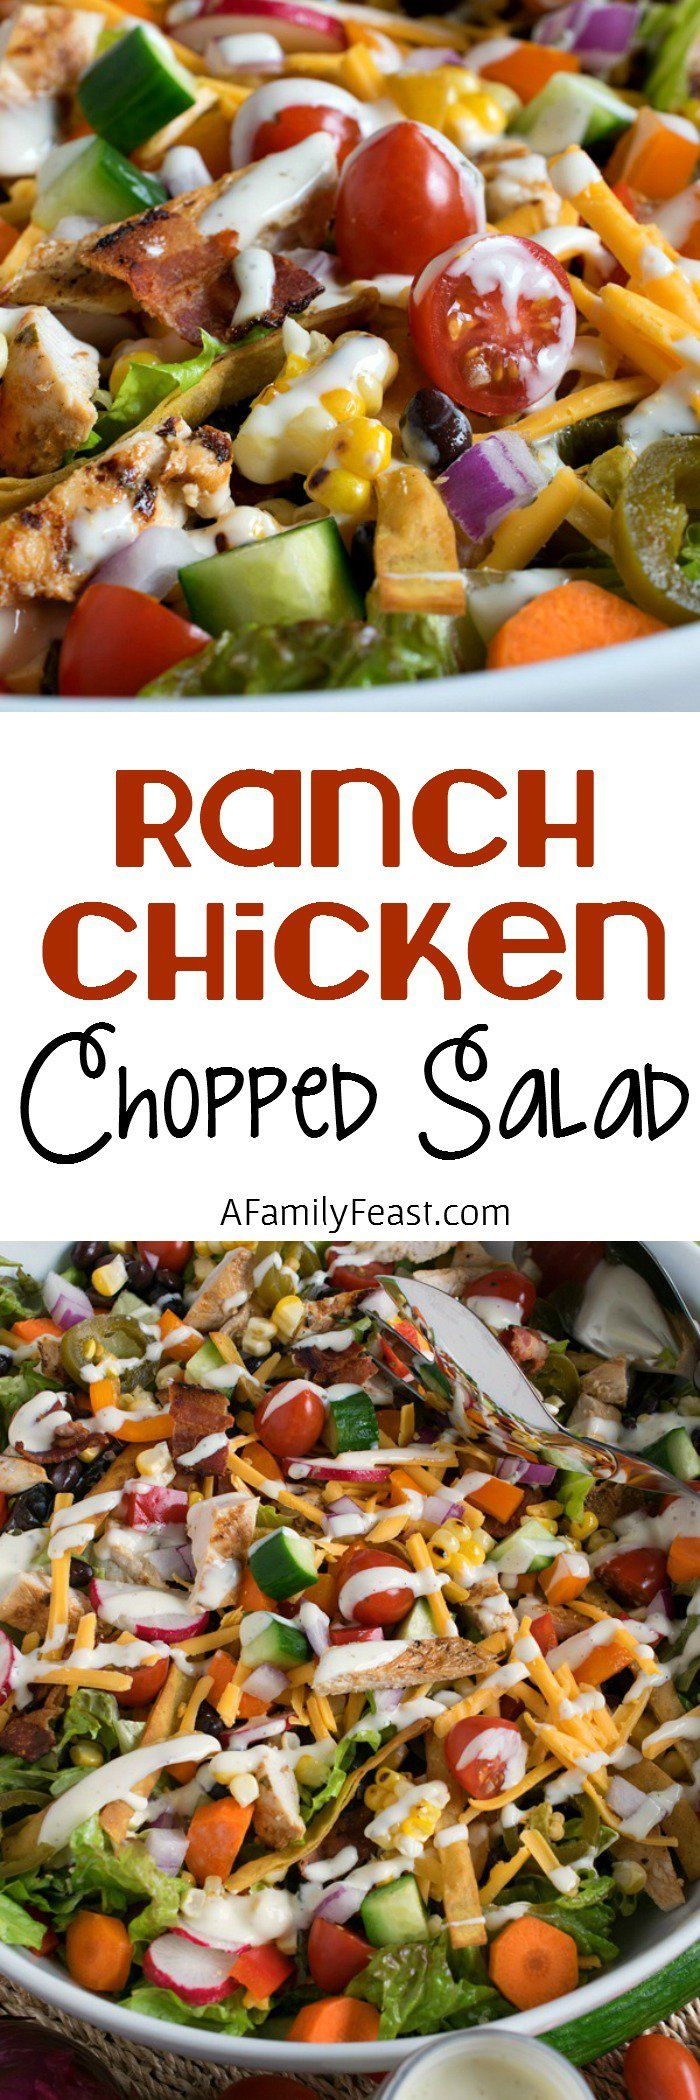 Ranch Chicken Chopped Salad - Grilled chicken, fresh veggies, tortilla strips and cheese - plus a delicious Ranch Dressing! #ForTheLoveOfProduce {sponsored} @marzettikitchen